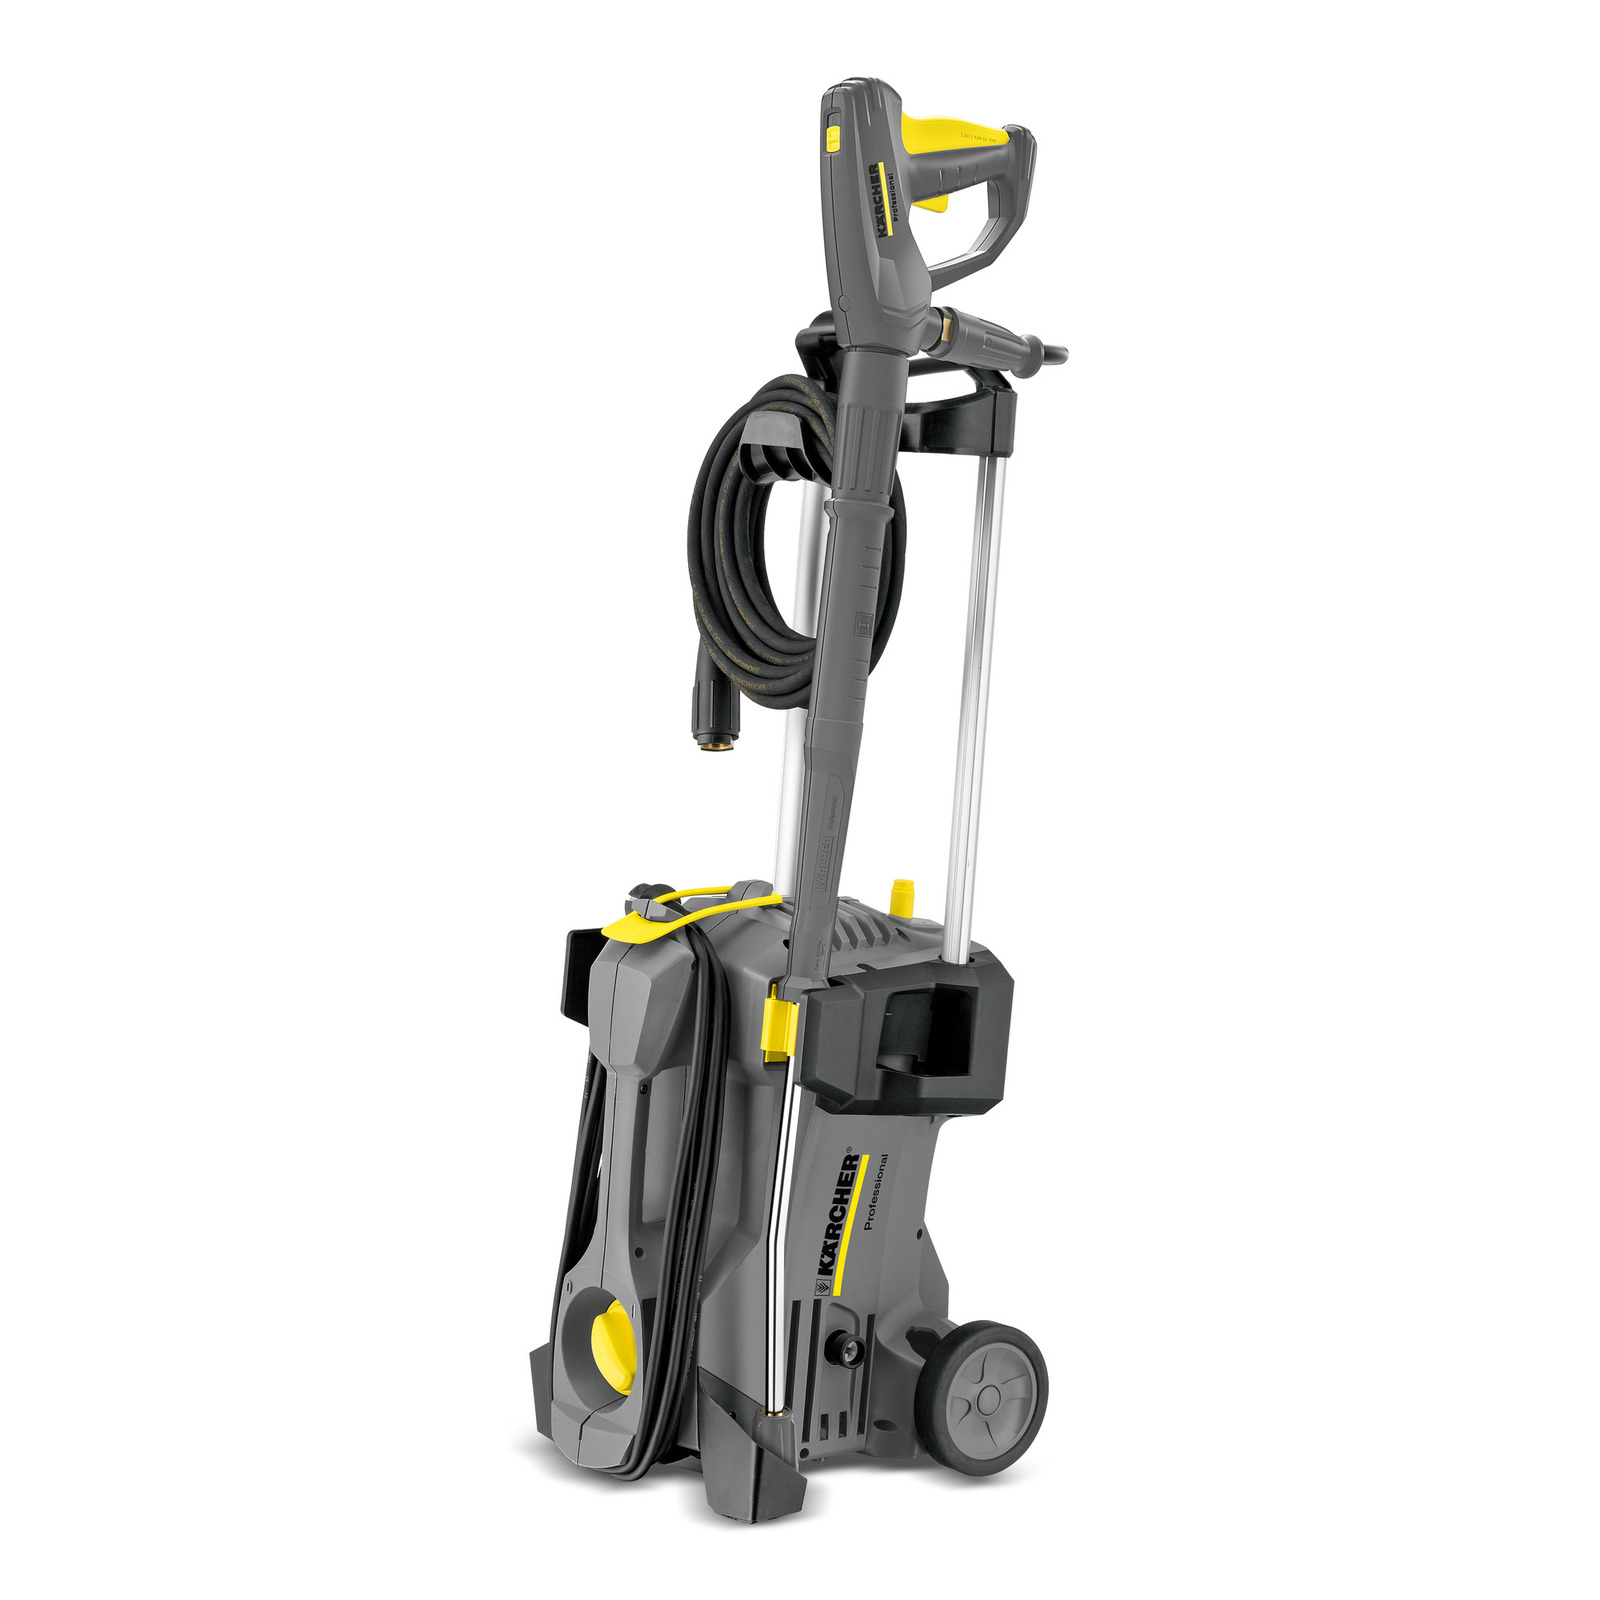 KARCHER 1.520-982.0 - ProHD 600 High Pressure Washer